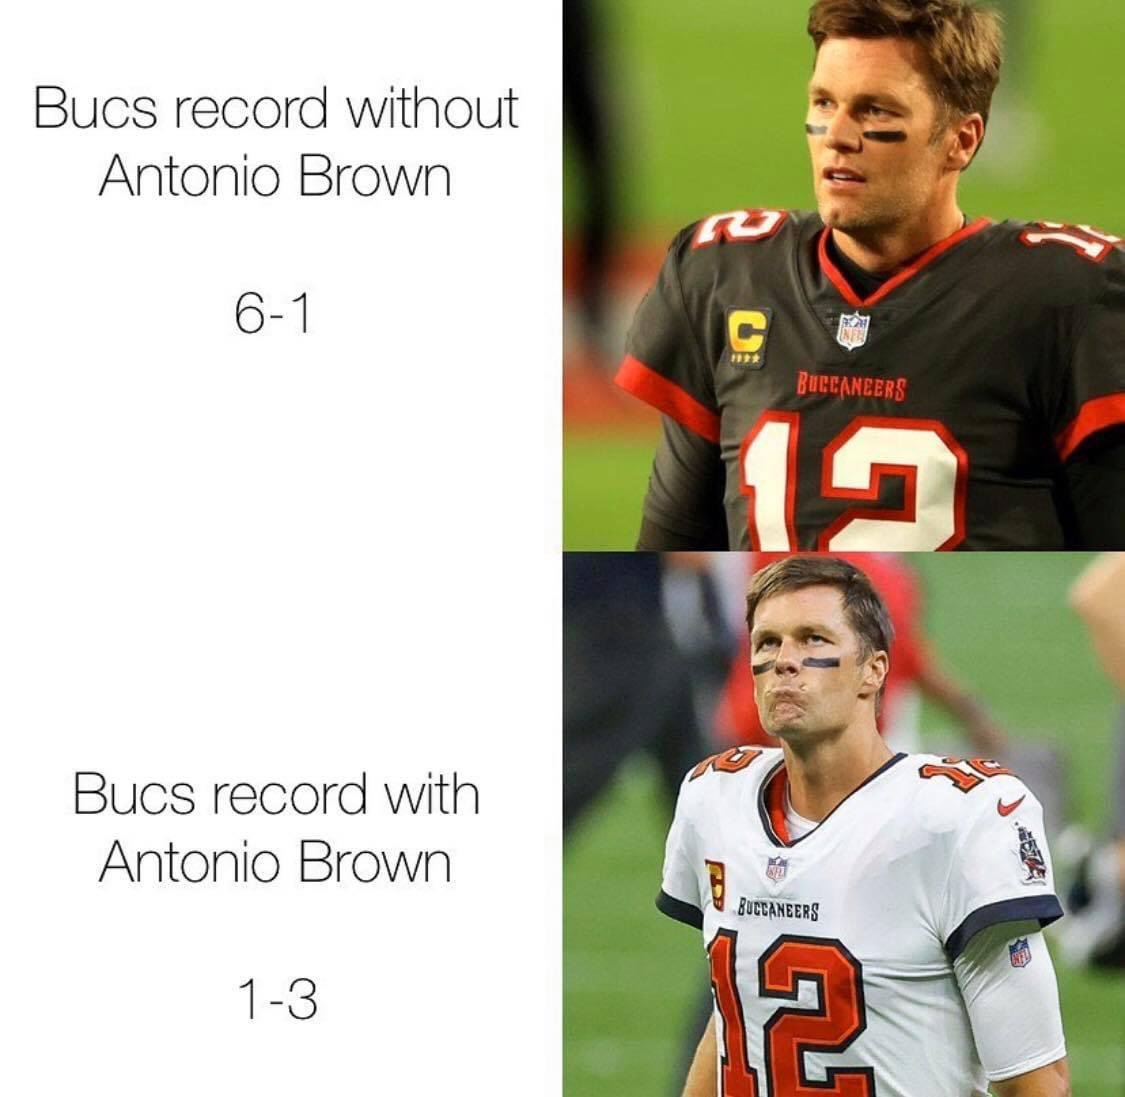 They just can't win consistently with AB #Buccaneers lololol #NFL https://t.co/A7Y0X9xwFc